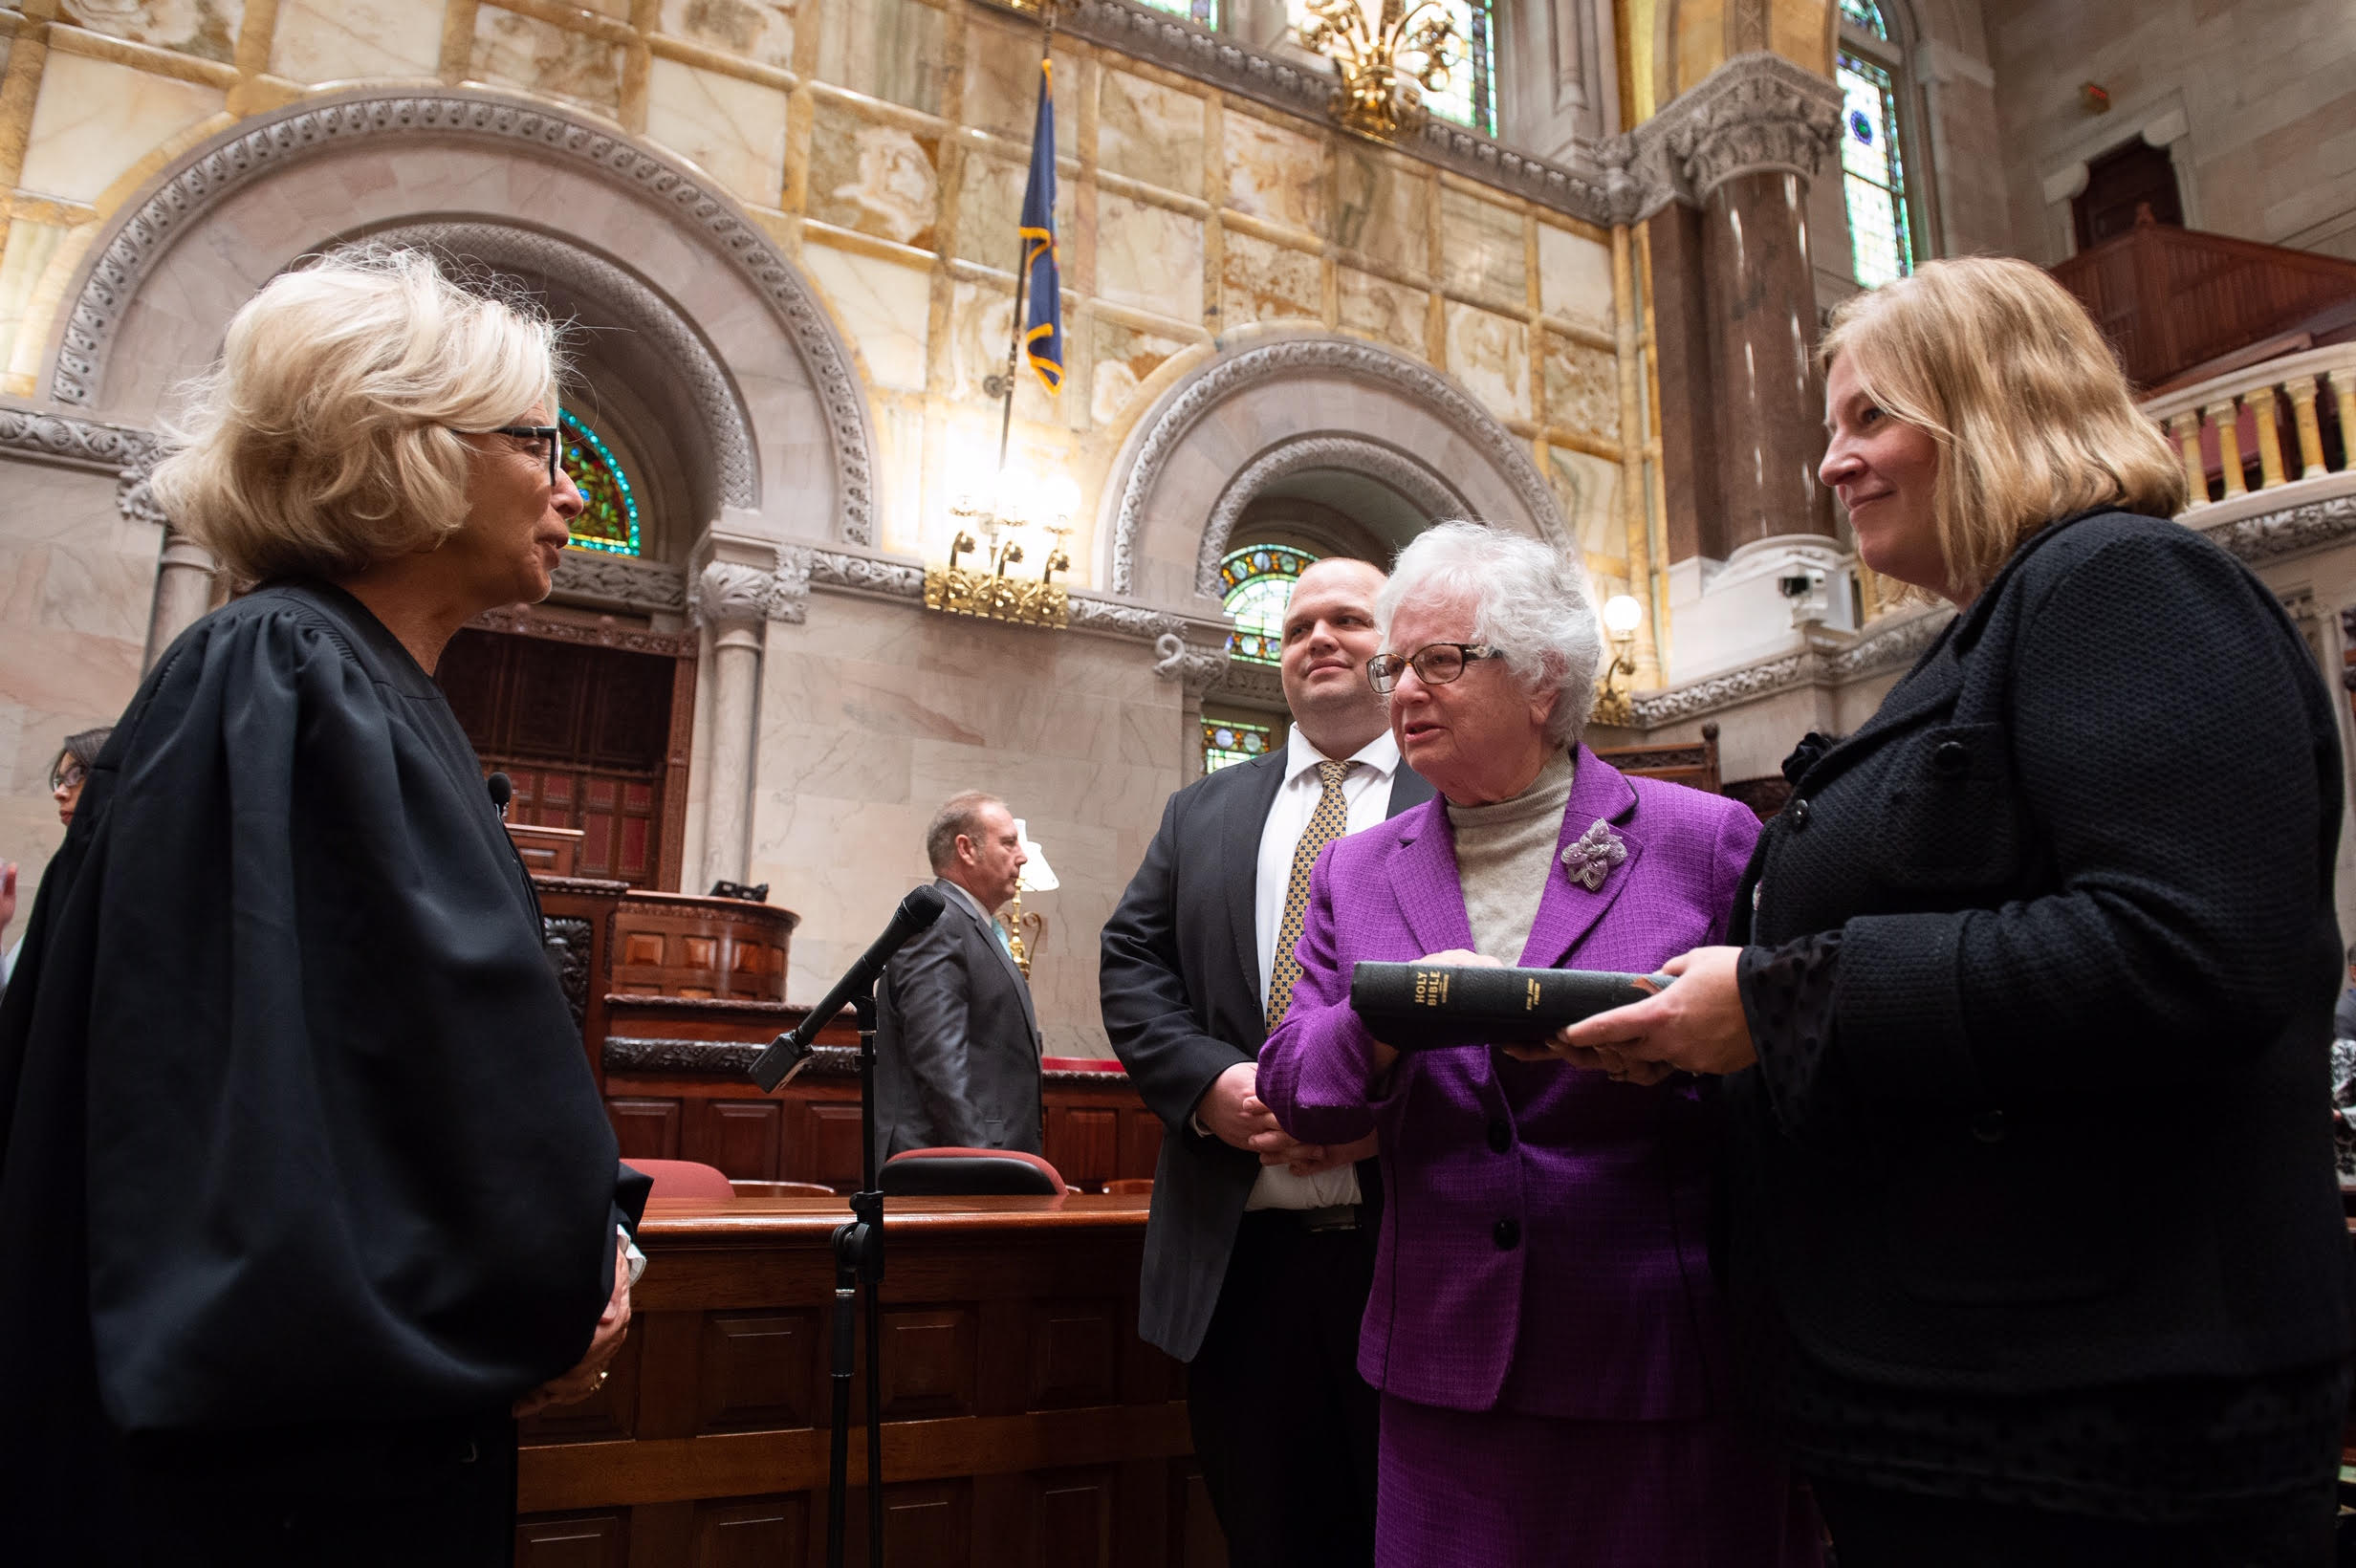 New York Senator Stavisky Takes Oath, Begins 11th Term in Albany